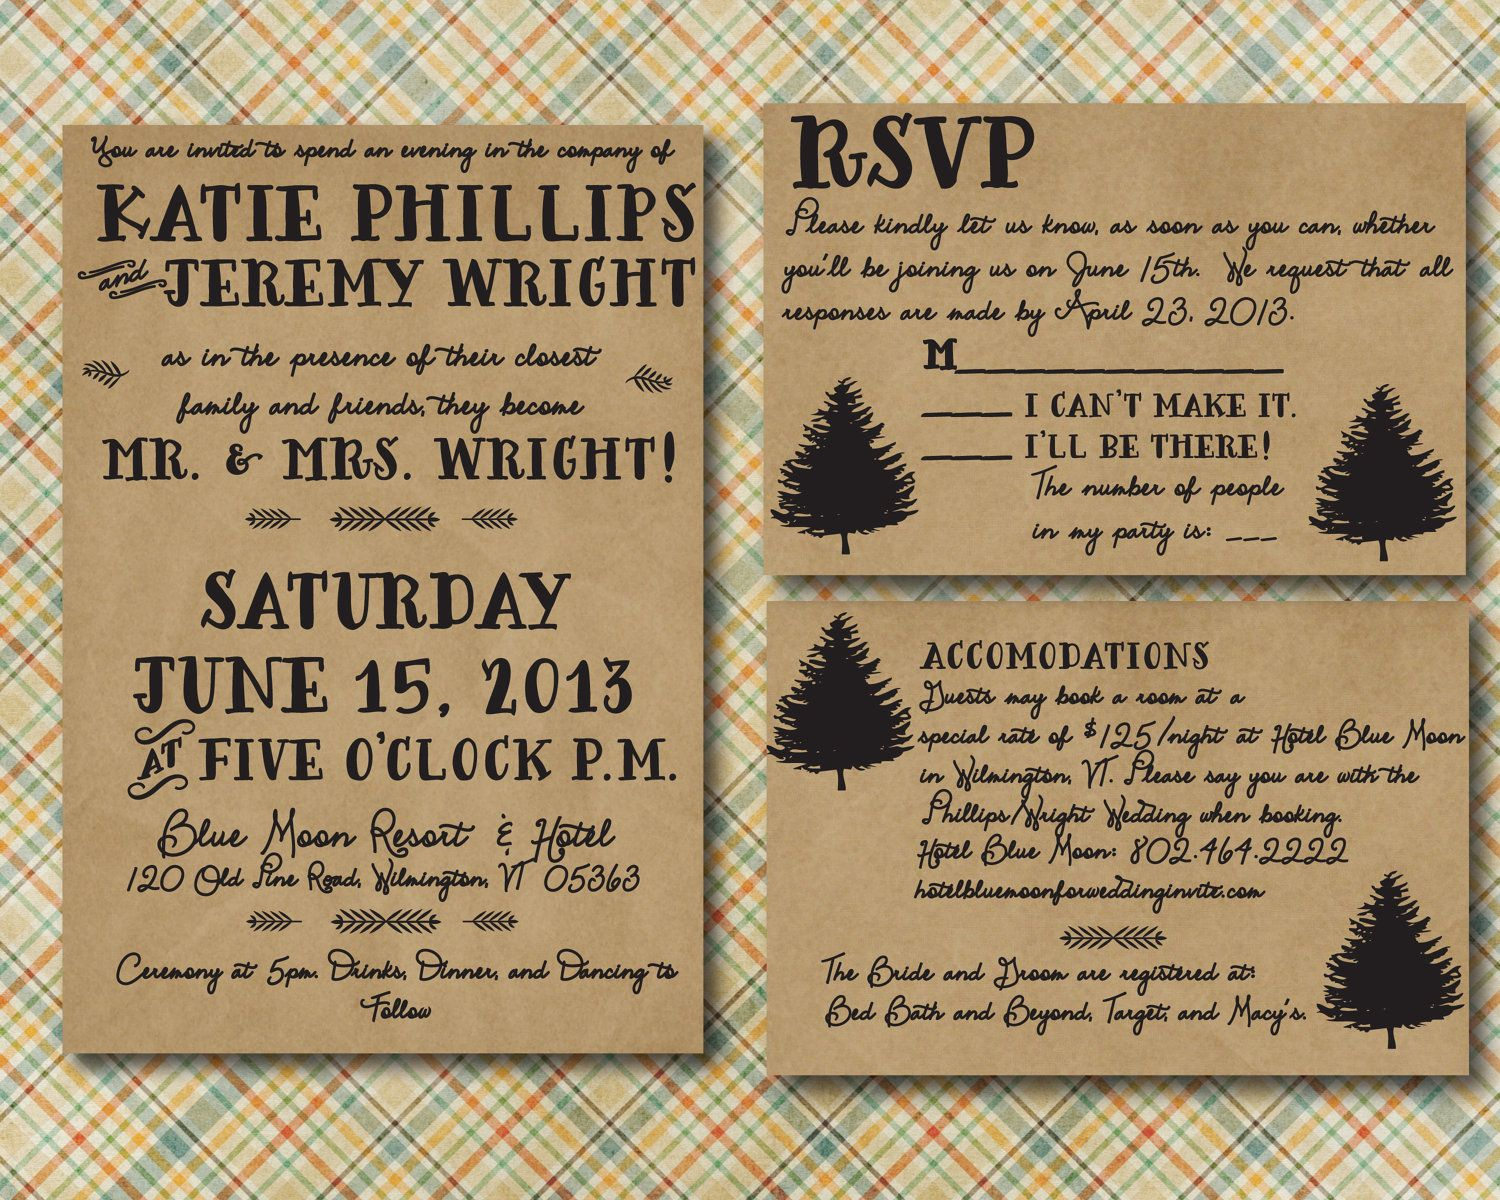 Rustic Wedding Invitation With RSVP Card